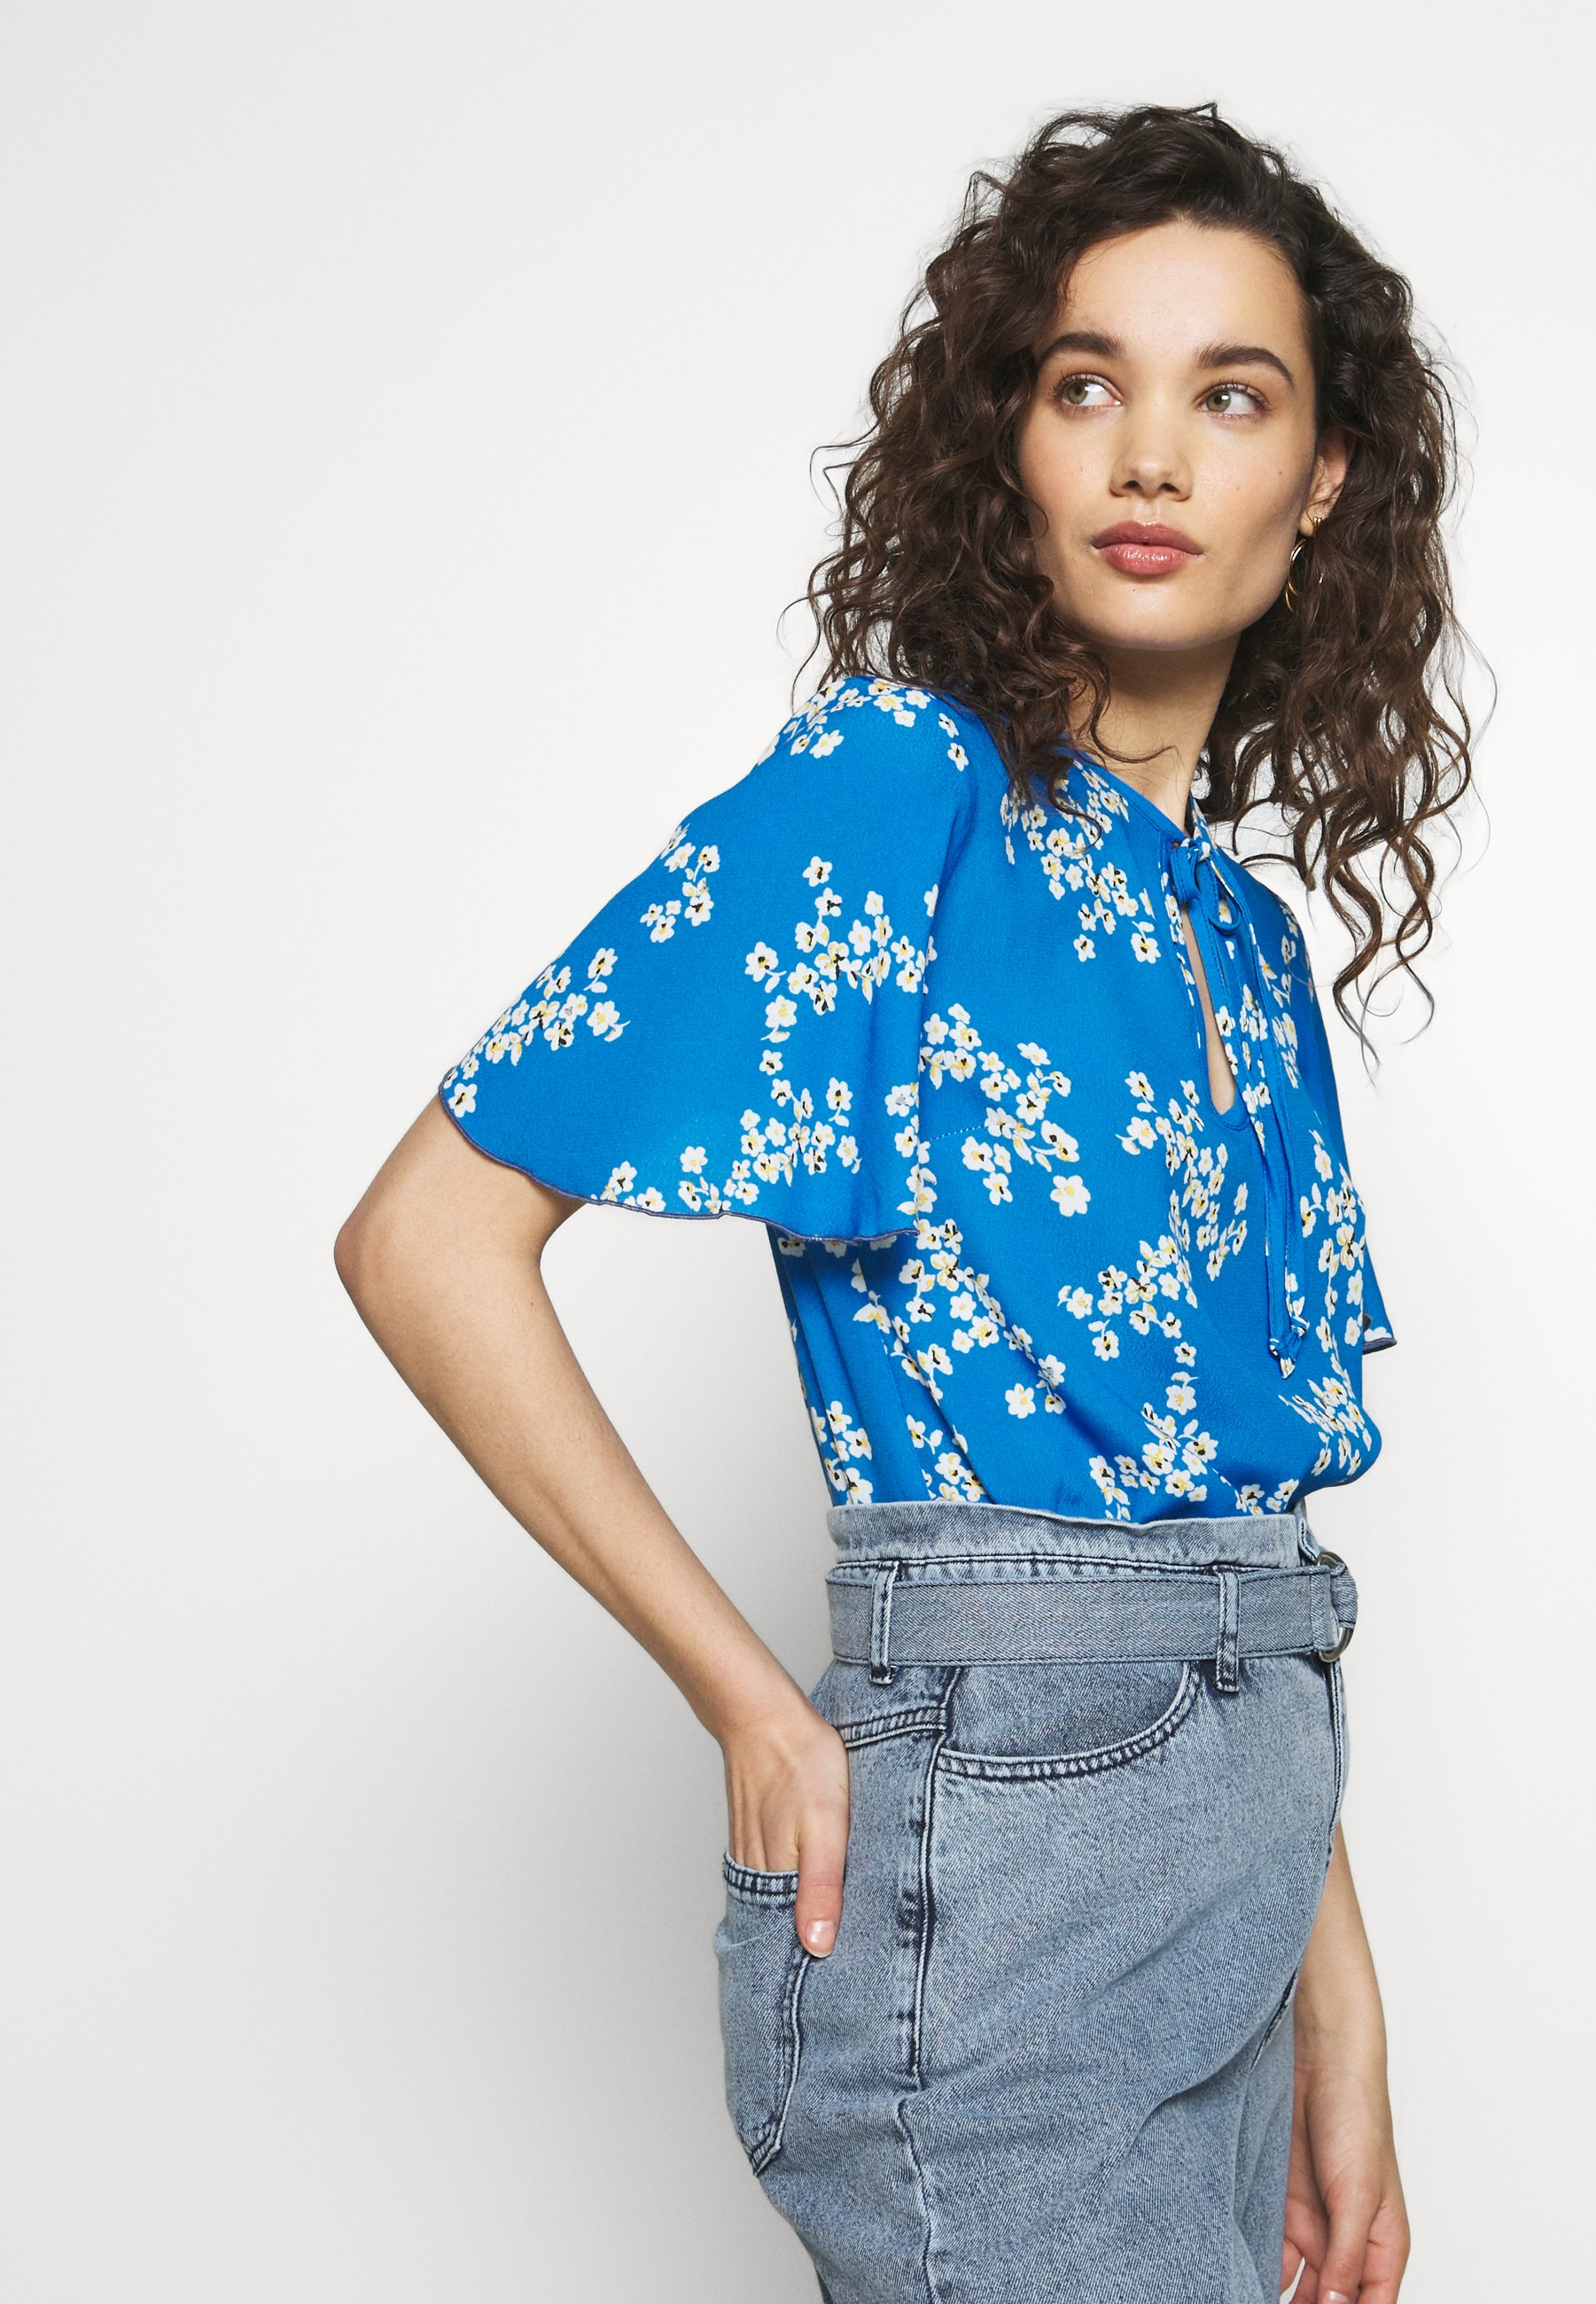 Progetto Quid Blouse - light blueflowers l9E6o